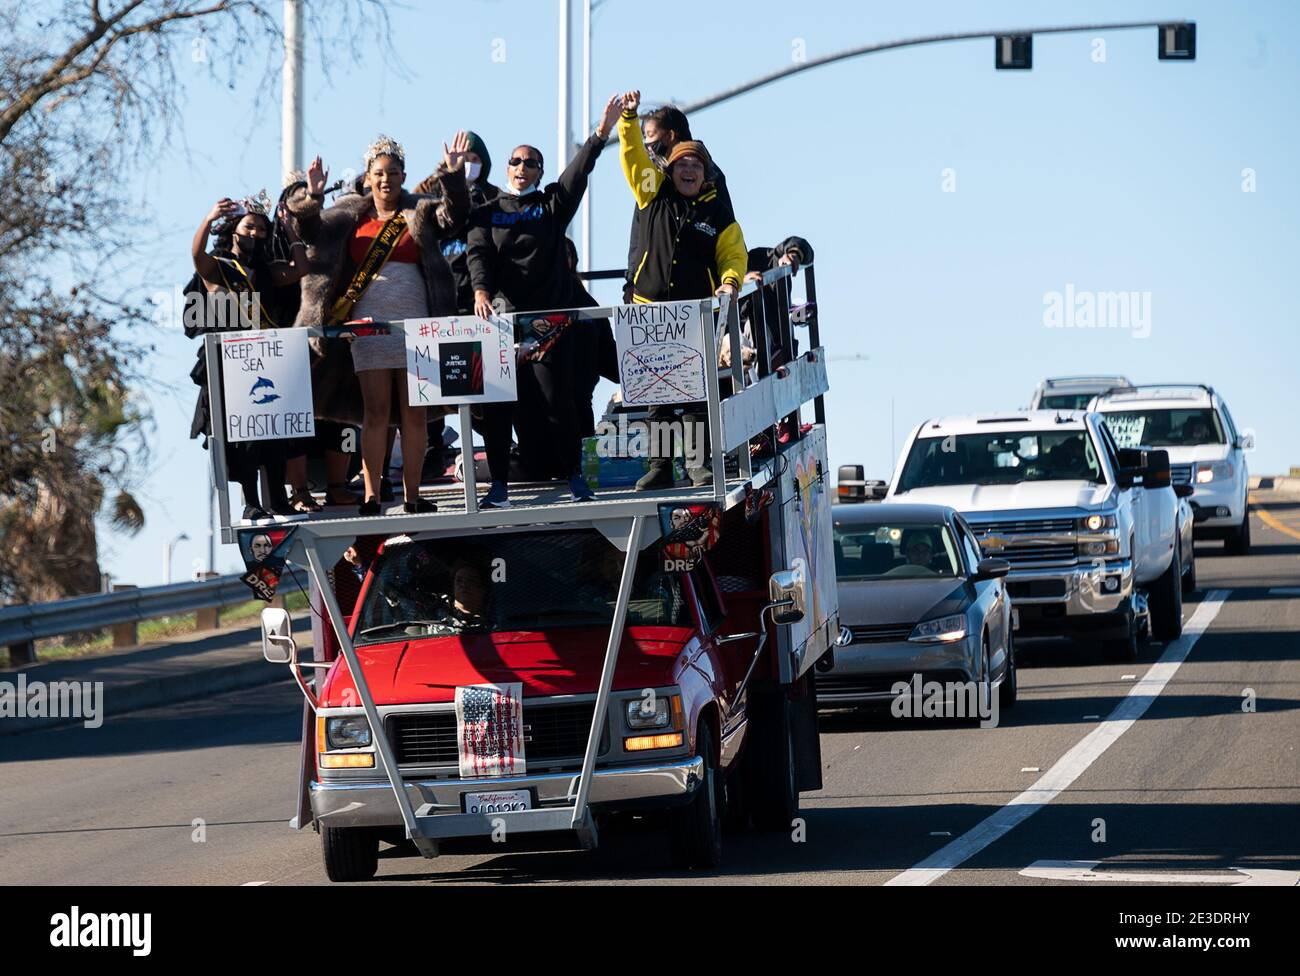 Sacramento, CA, USA. 18th Jan, 2021. 100Õs of cars leave Sacrament City College during the #ReclaimMLK Day car caravan in celebration of Martin Luther King Jr.Õs birthday sponsored by Black Lives Sacramento and NCAAP on Monday, Jan. 18, 2021 in Sacramento. Credit: Paul Kitagaki Jr./ZUMA Wire/Alamy Live News Stock Photo